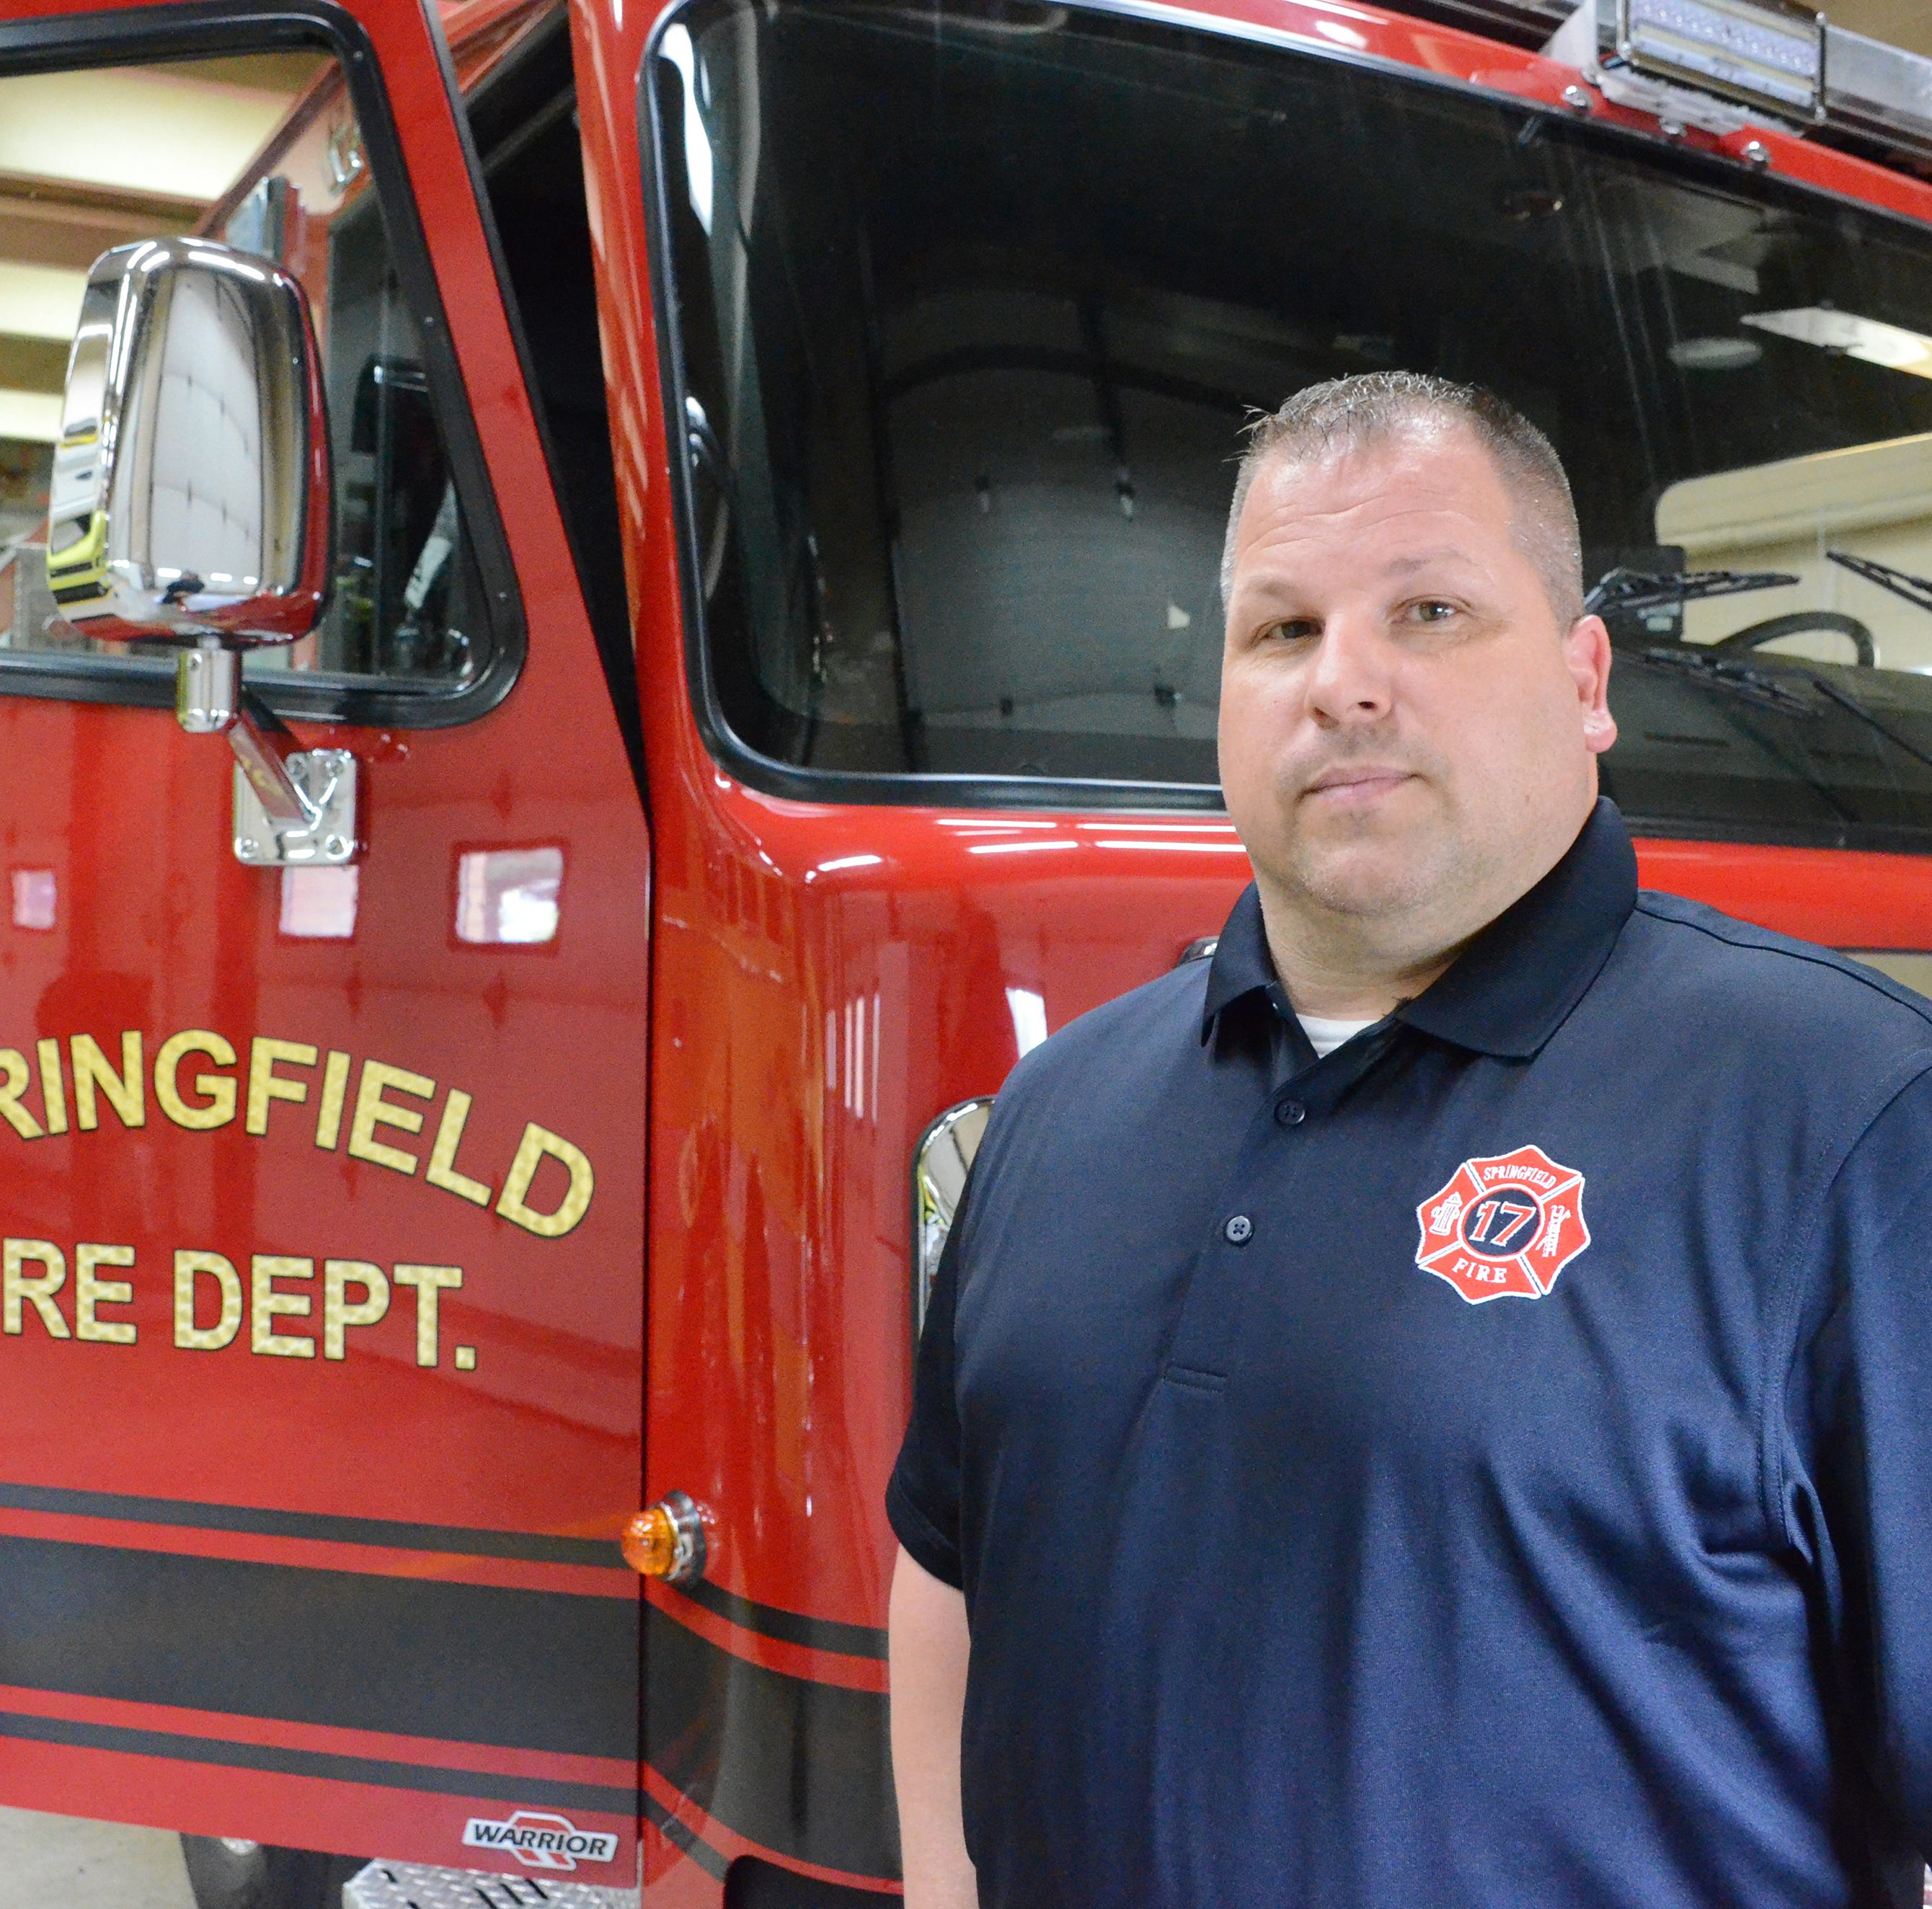 Springfield fire chief looking for more firefighters, but not help from Battle Creek